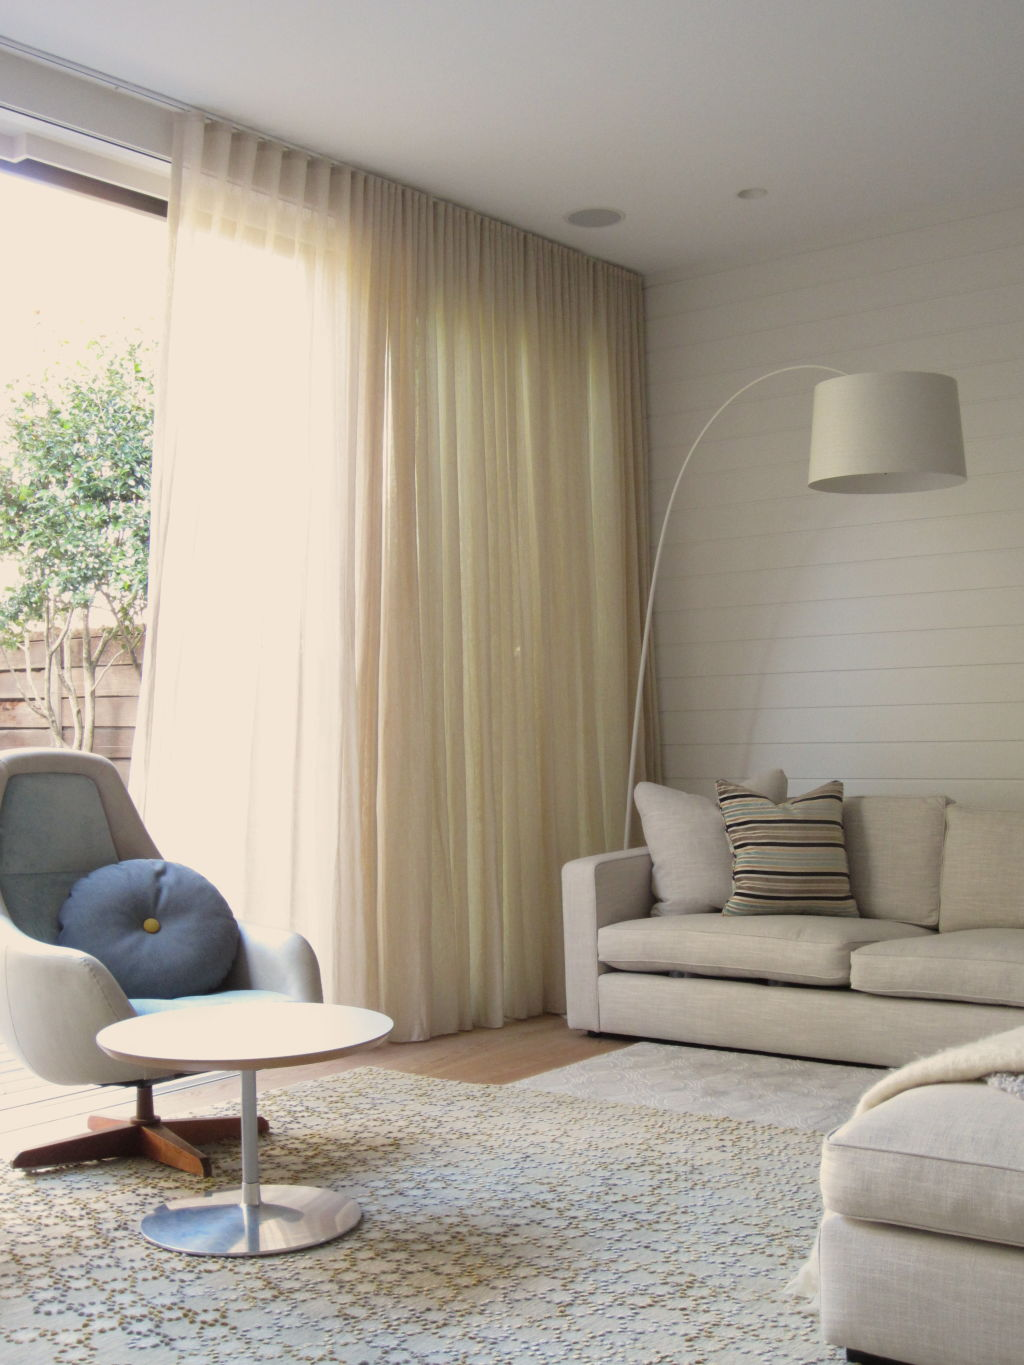 How to transform your home without renovating